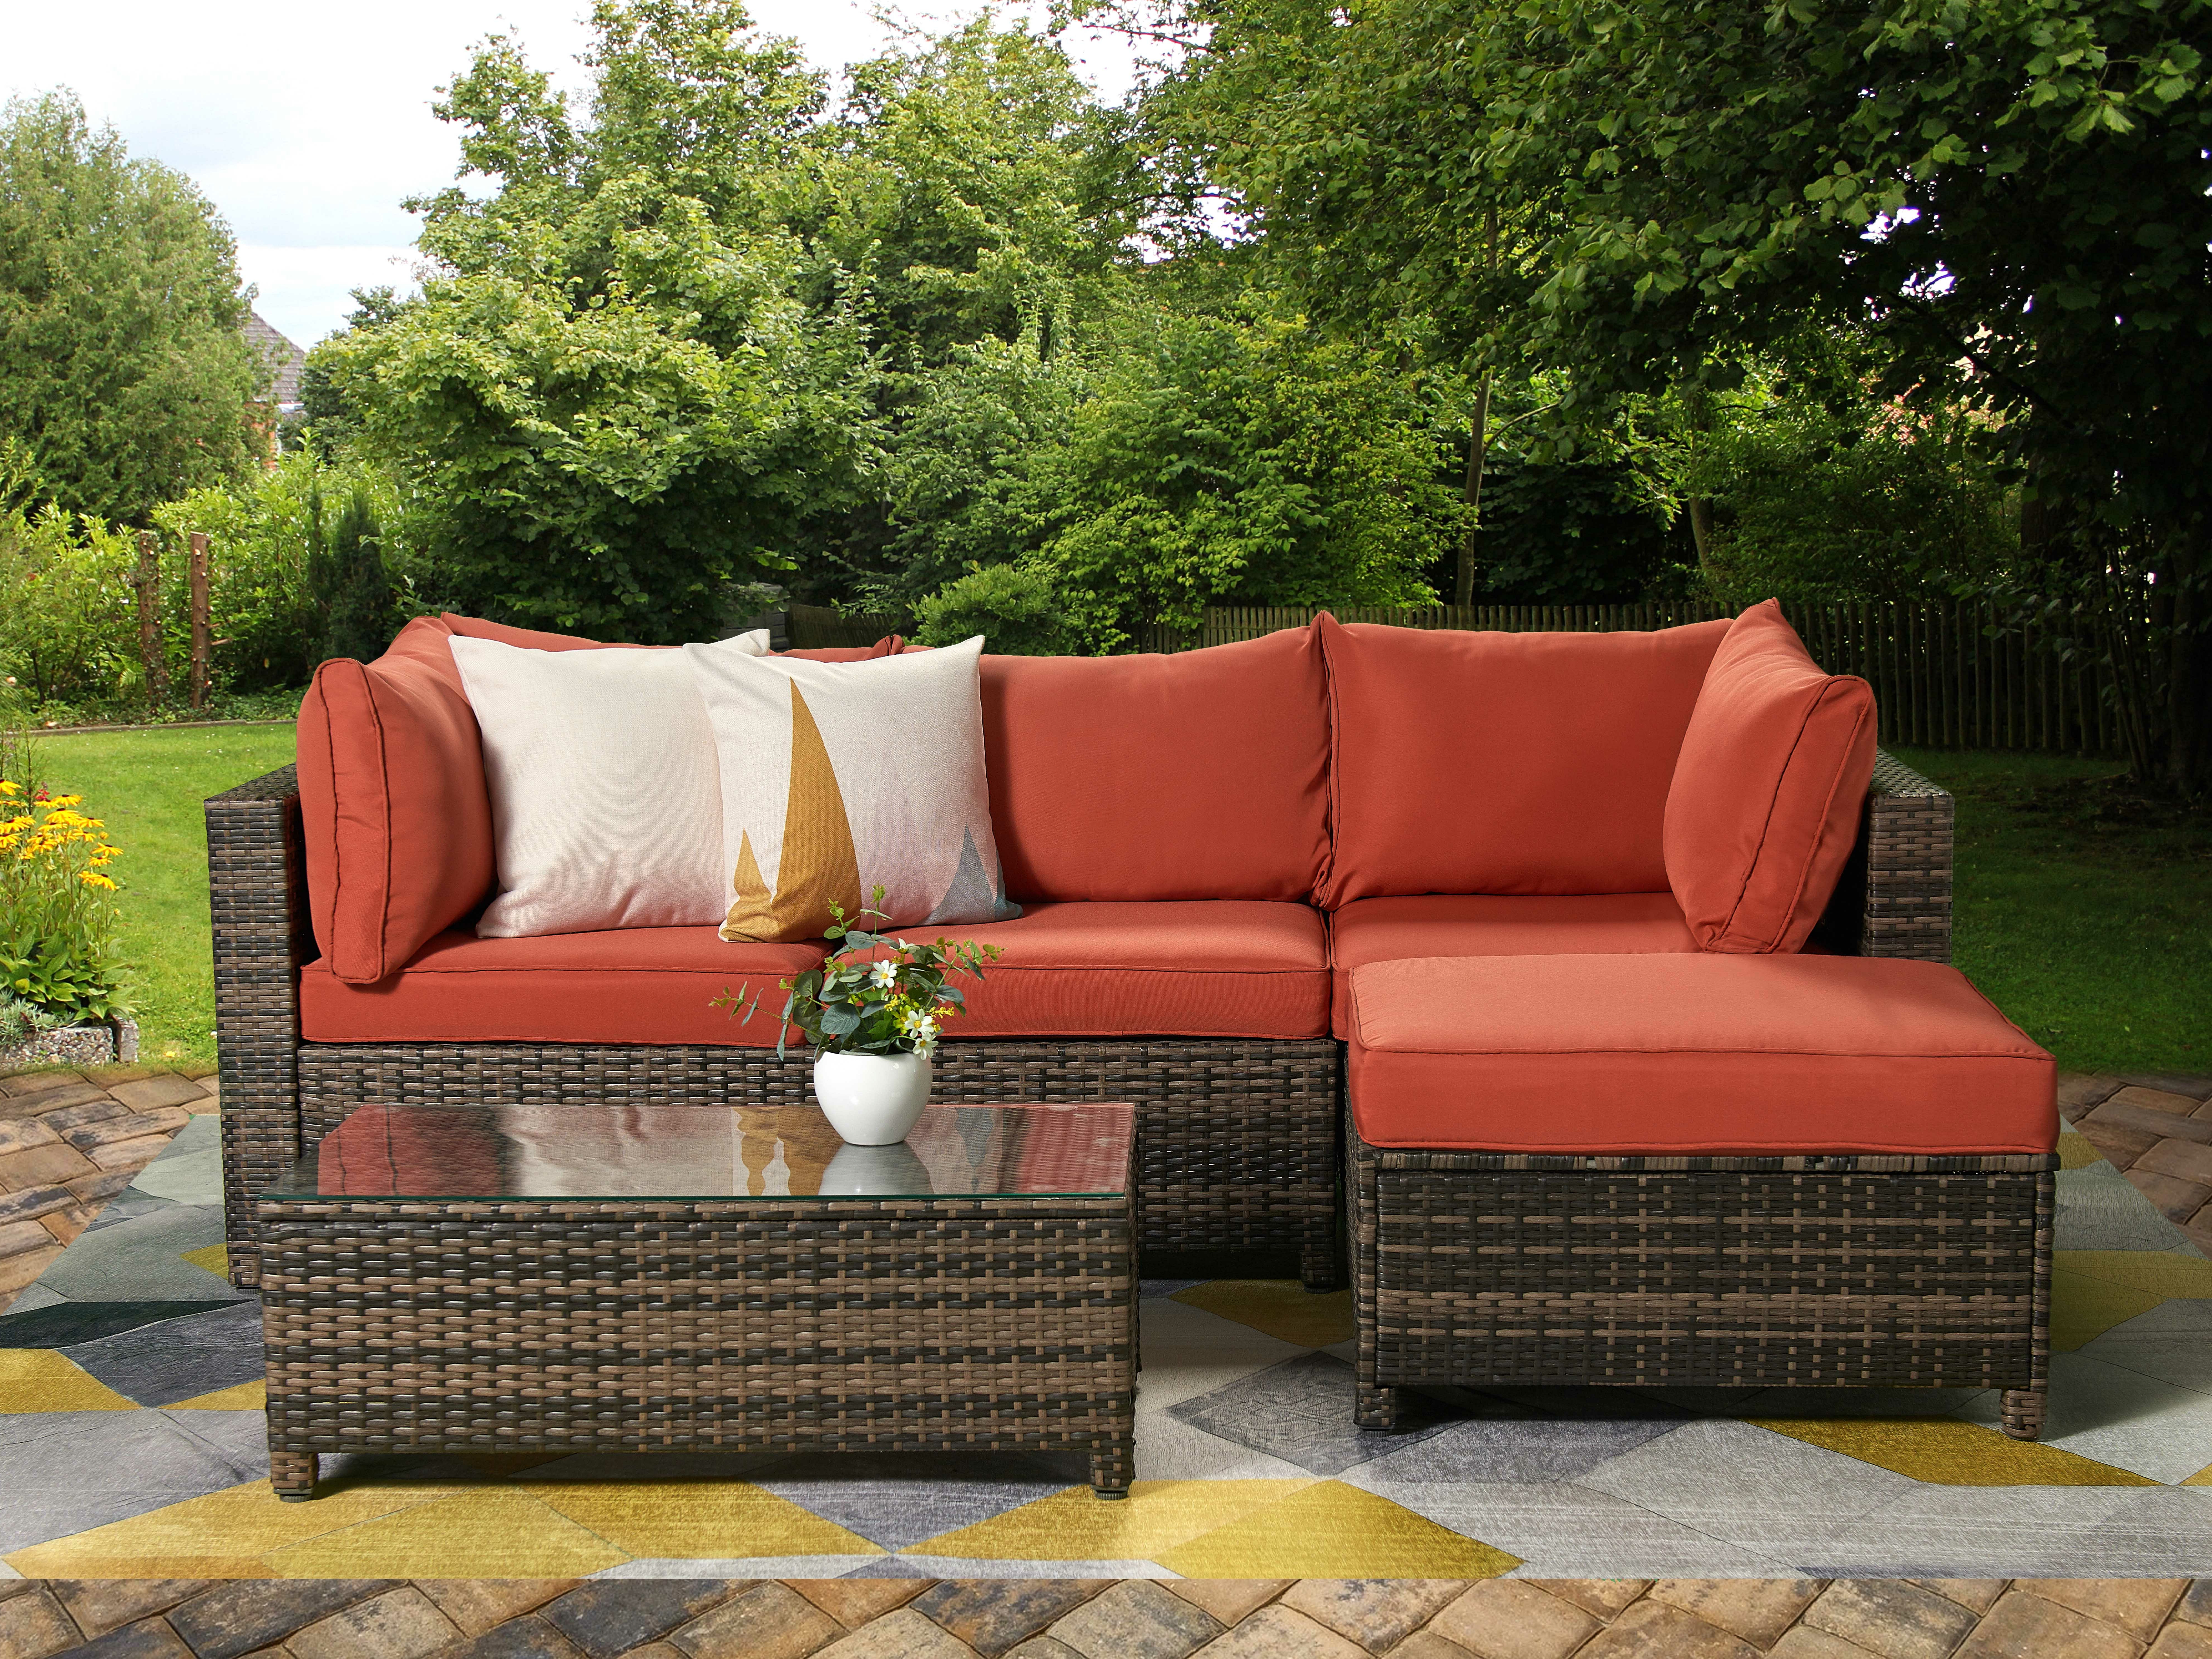 Patio Sofas With Cushions In Well Known Roni Patio Sectional With Cushions (View 12 of 20)